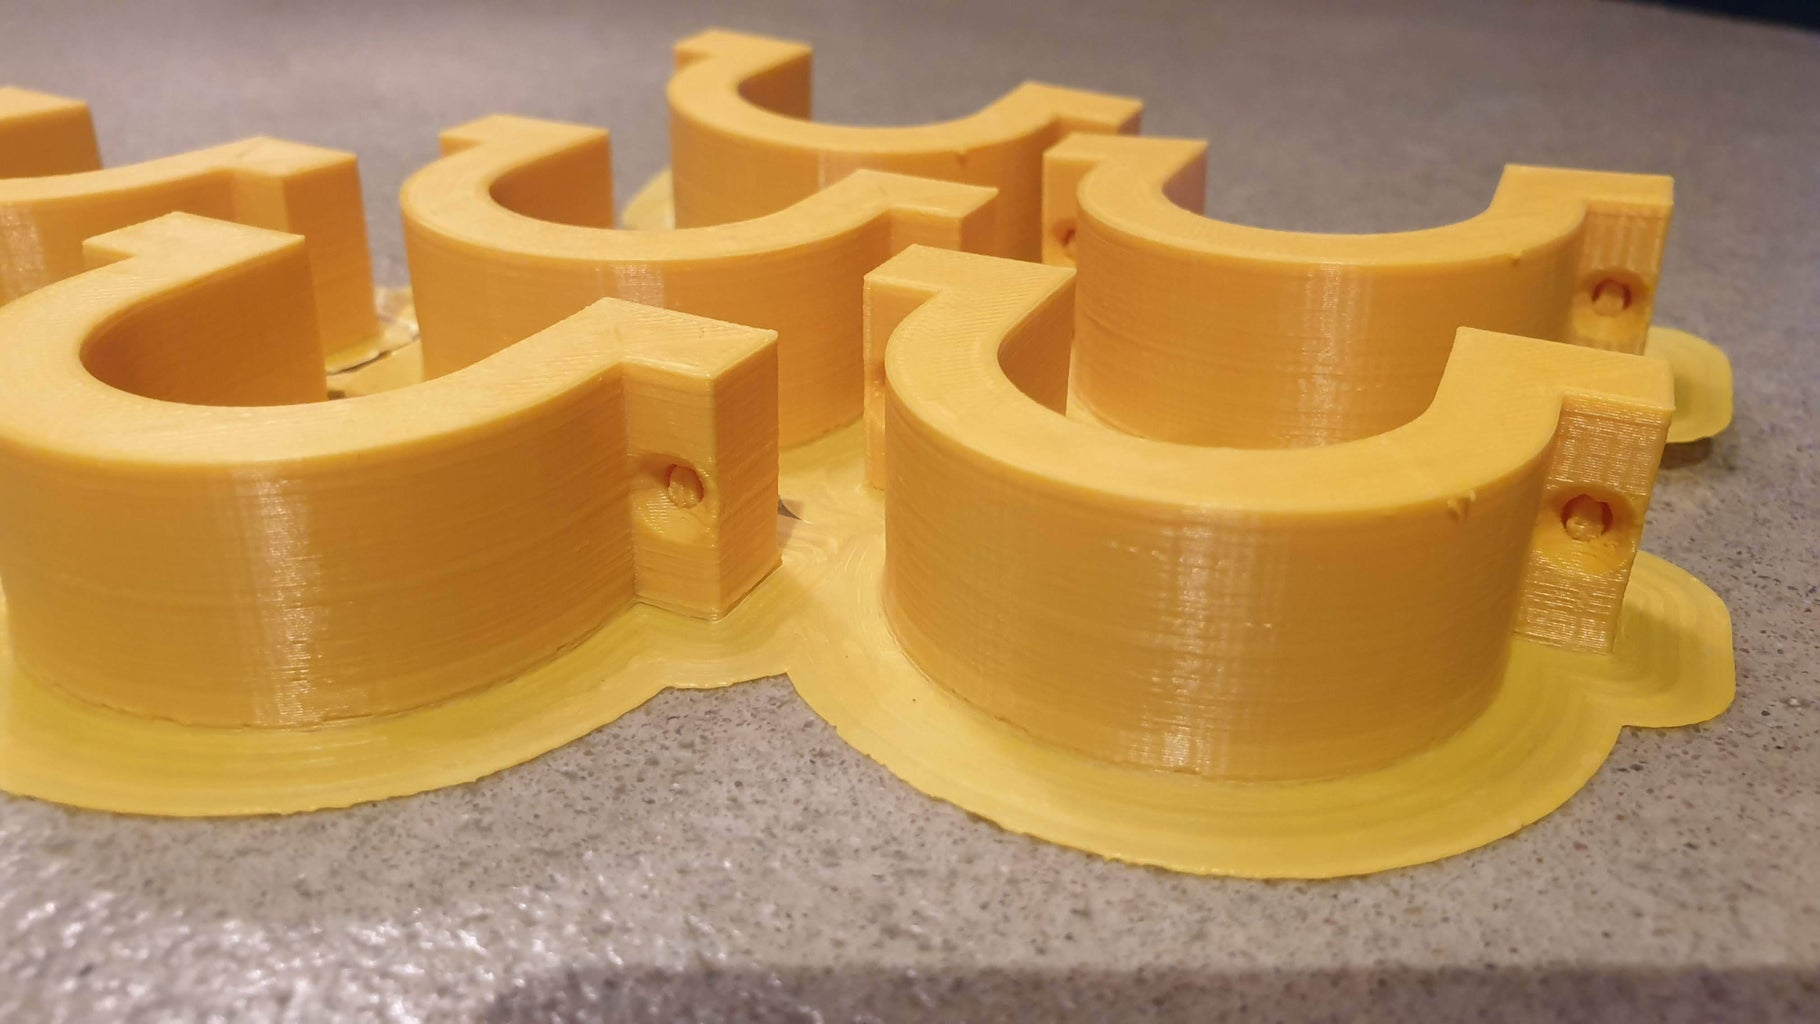 Printing of the Parts